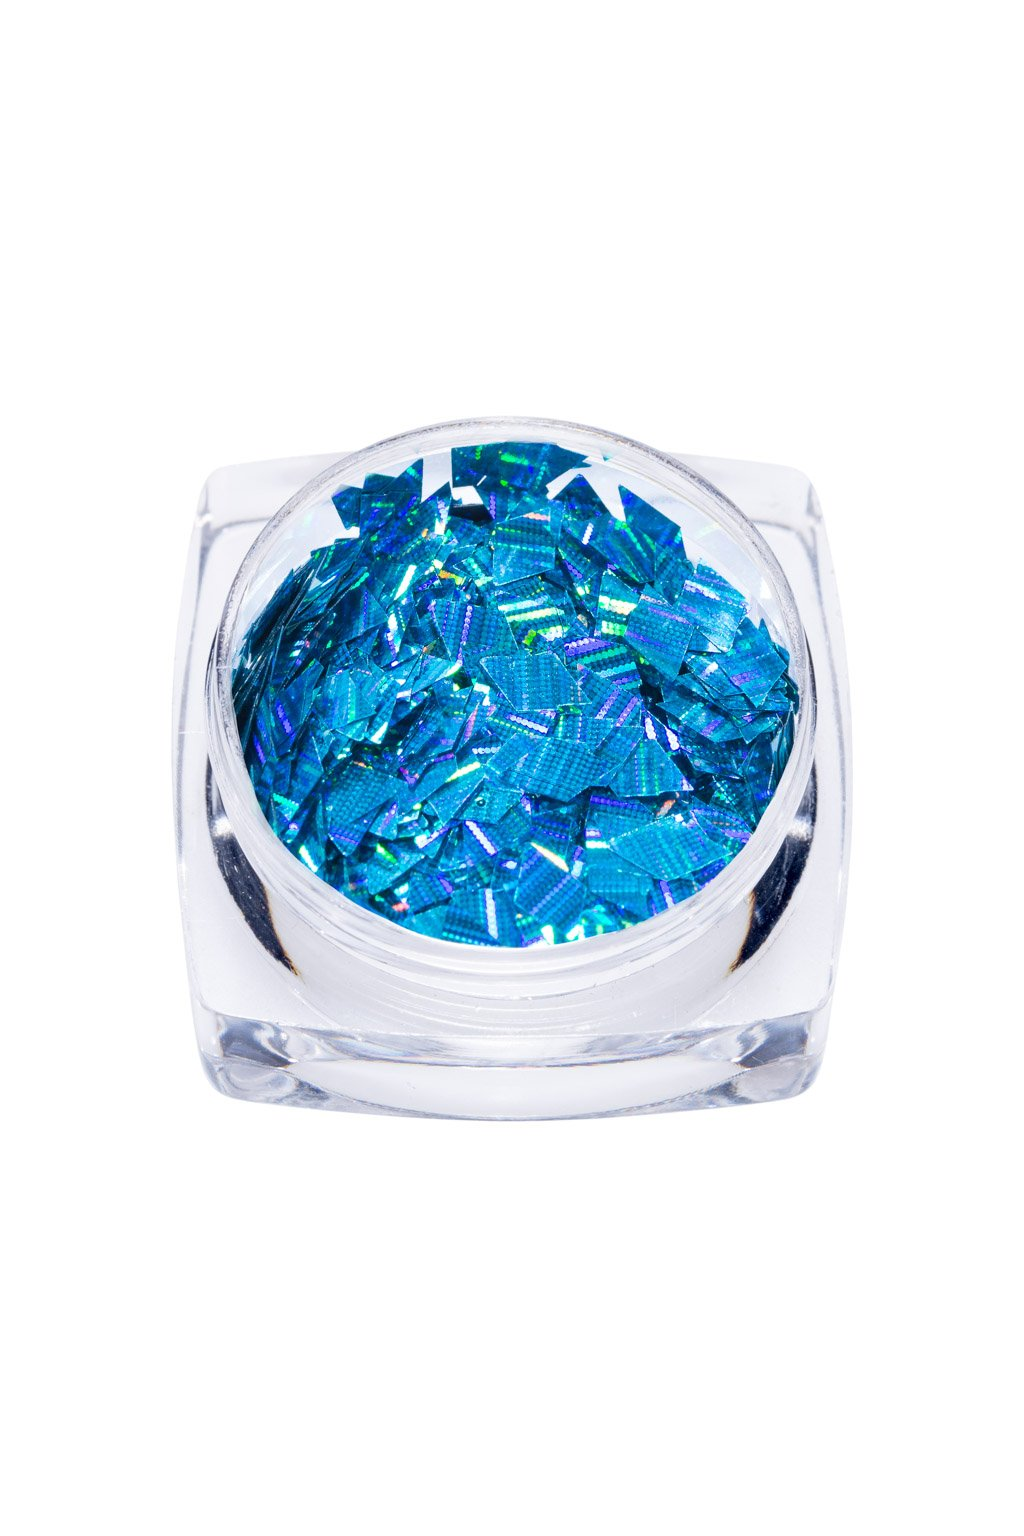 24074 blue holo diamond